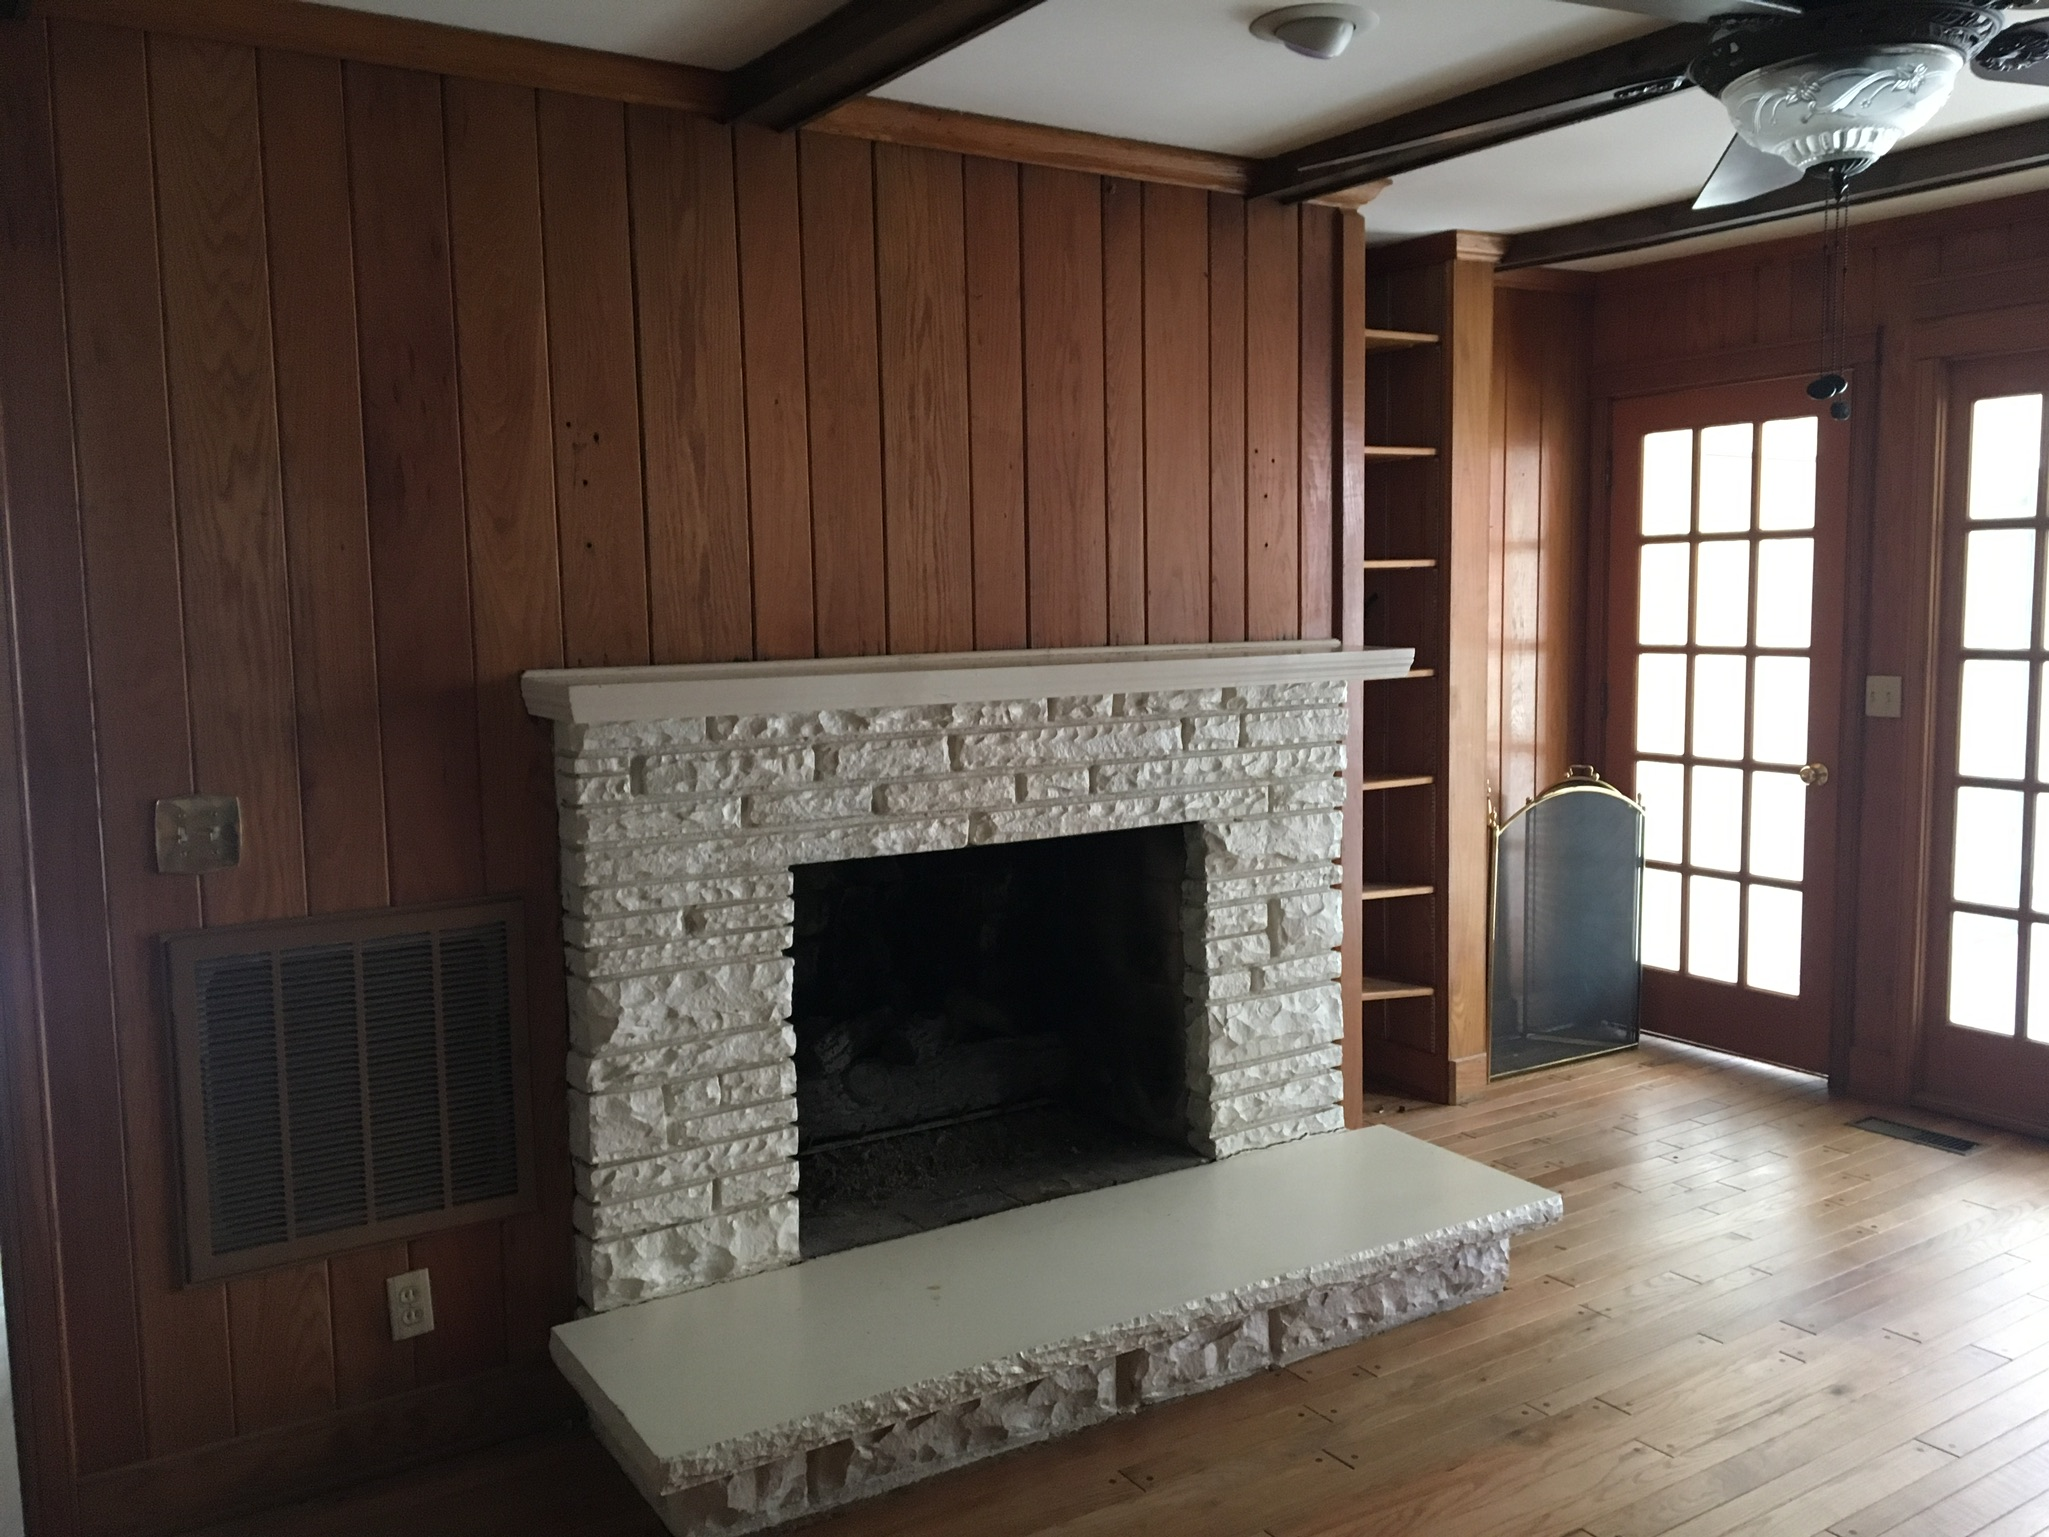 who knew that there was a beautiful fireplace behind all of that stone and paneling.